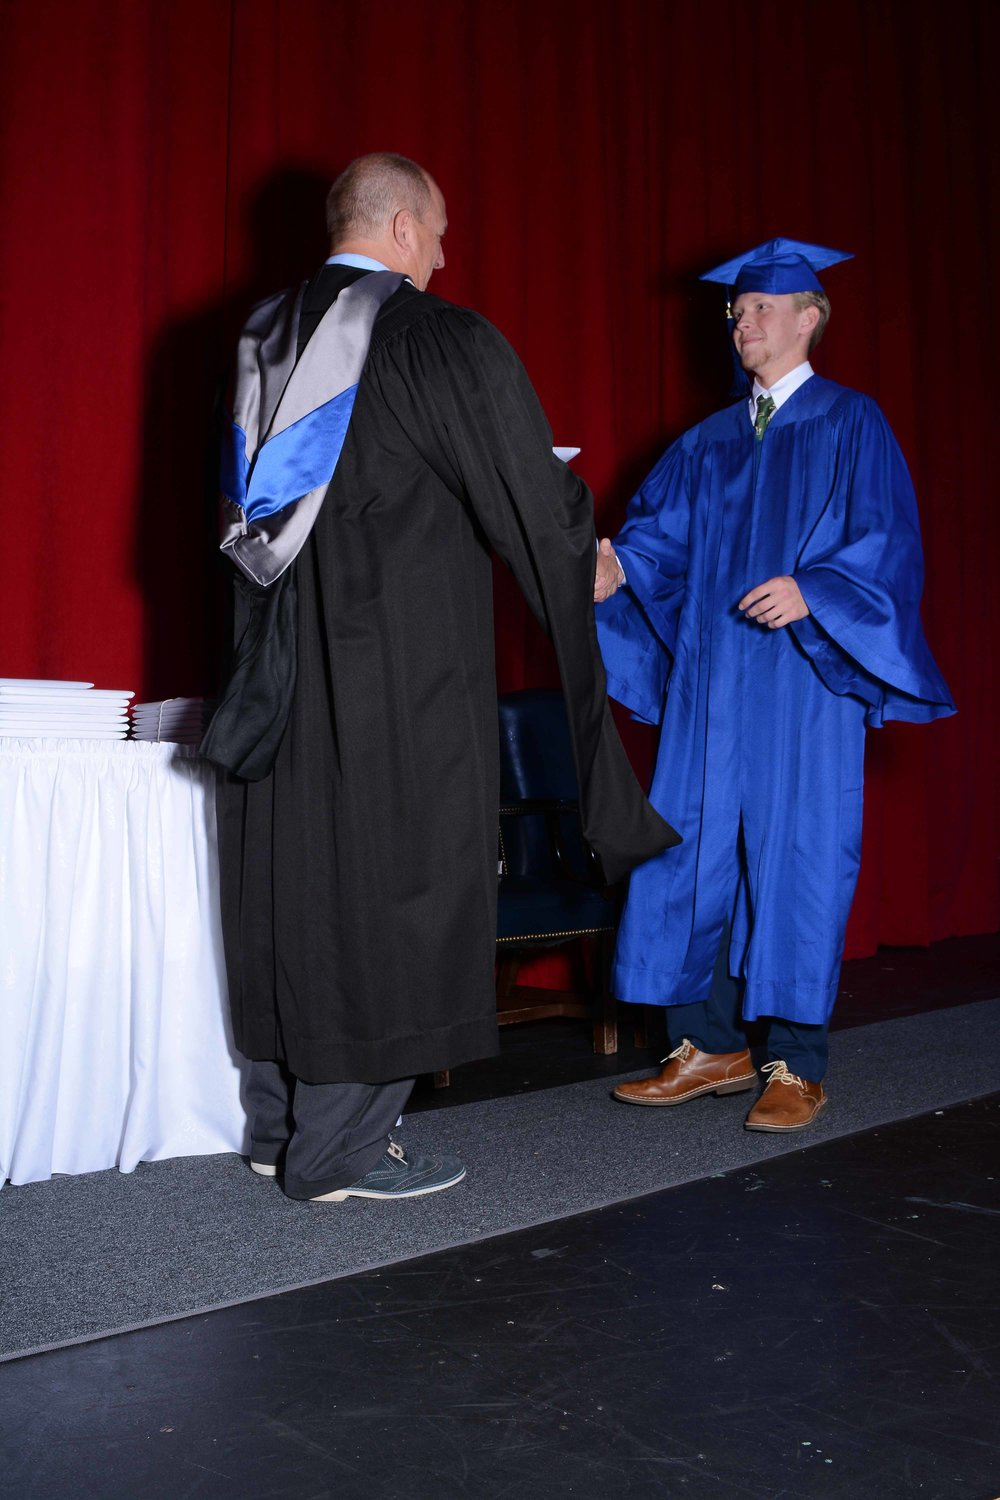 May14 Commencement130.jpg